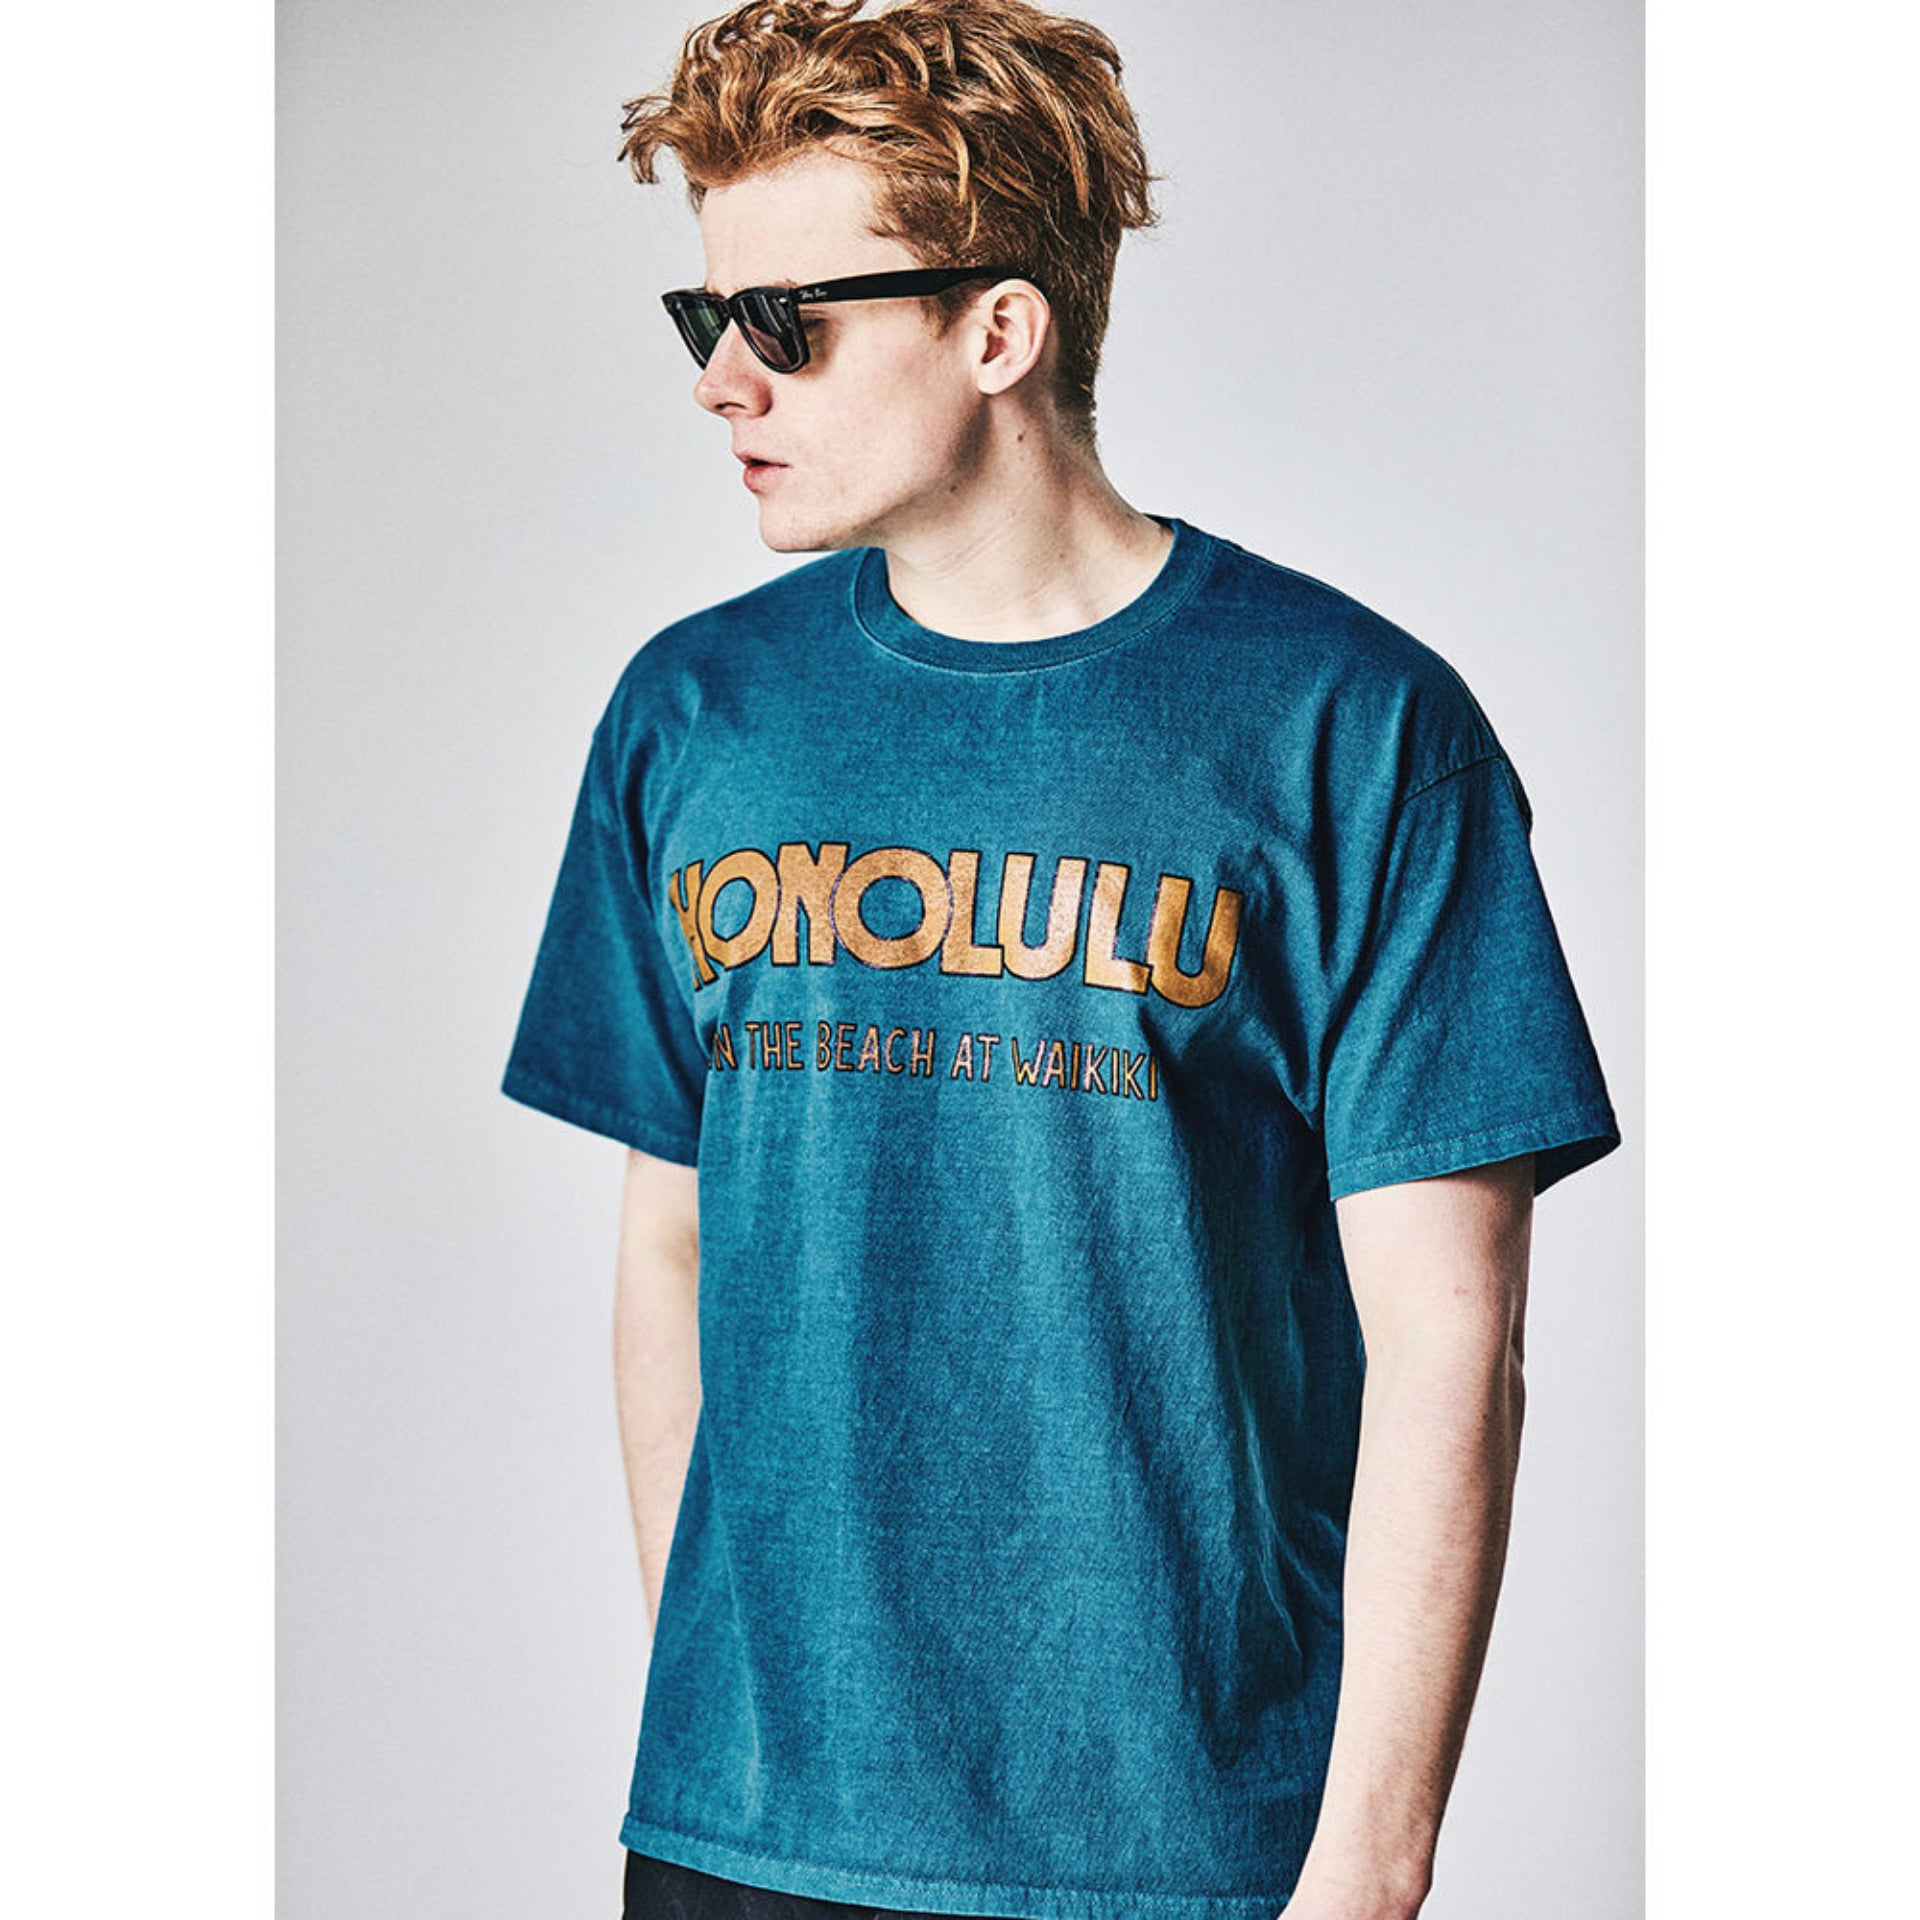 Original University T-shirt HONOLULU(palm green)